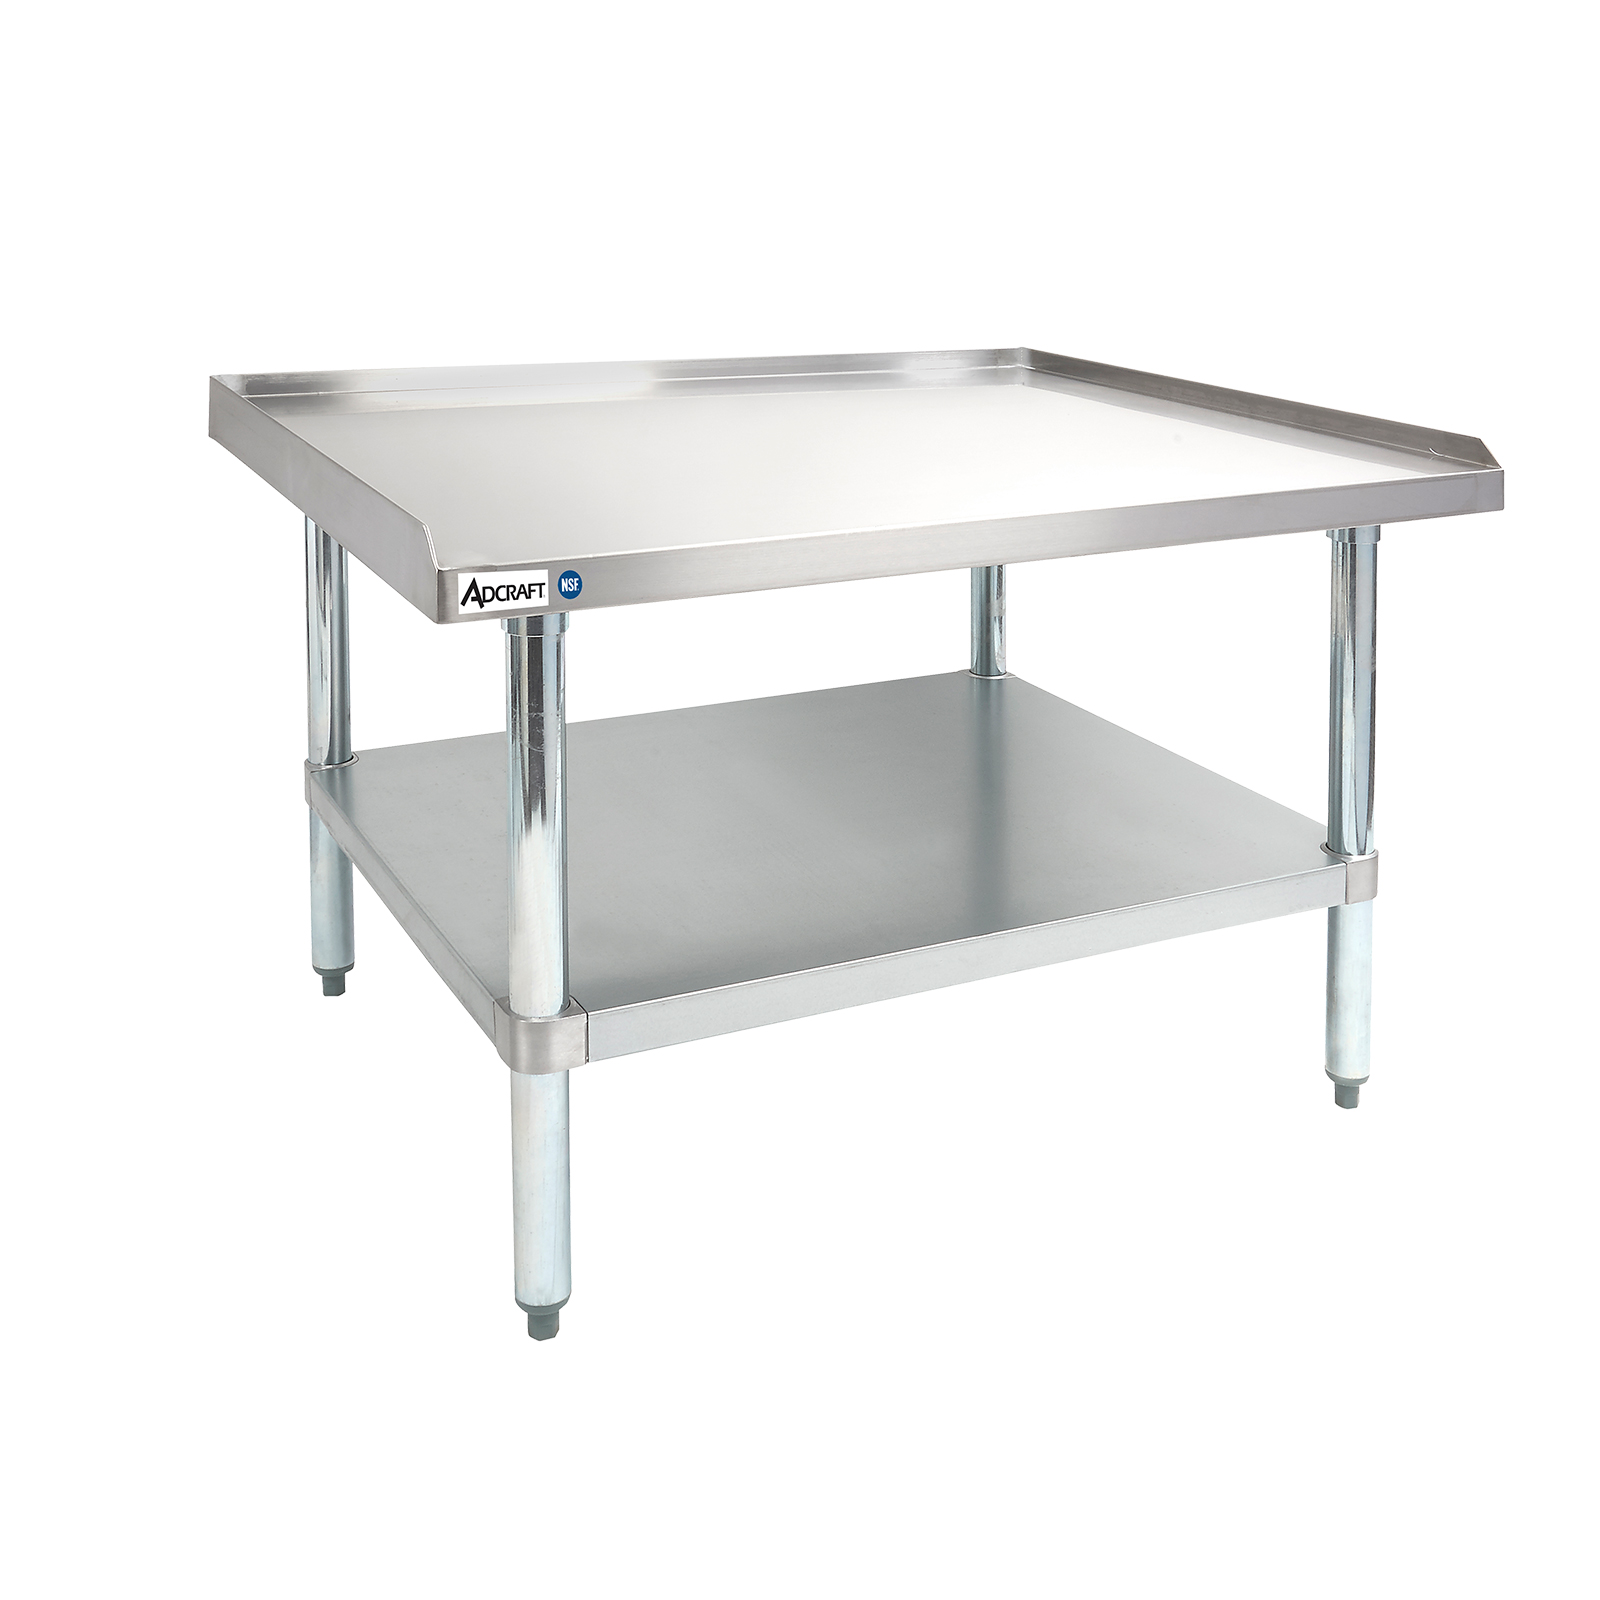 Admiral Craft ES-3060 equipment stand, for countertop cooking